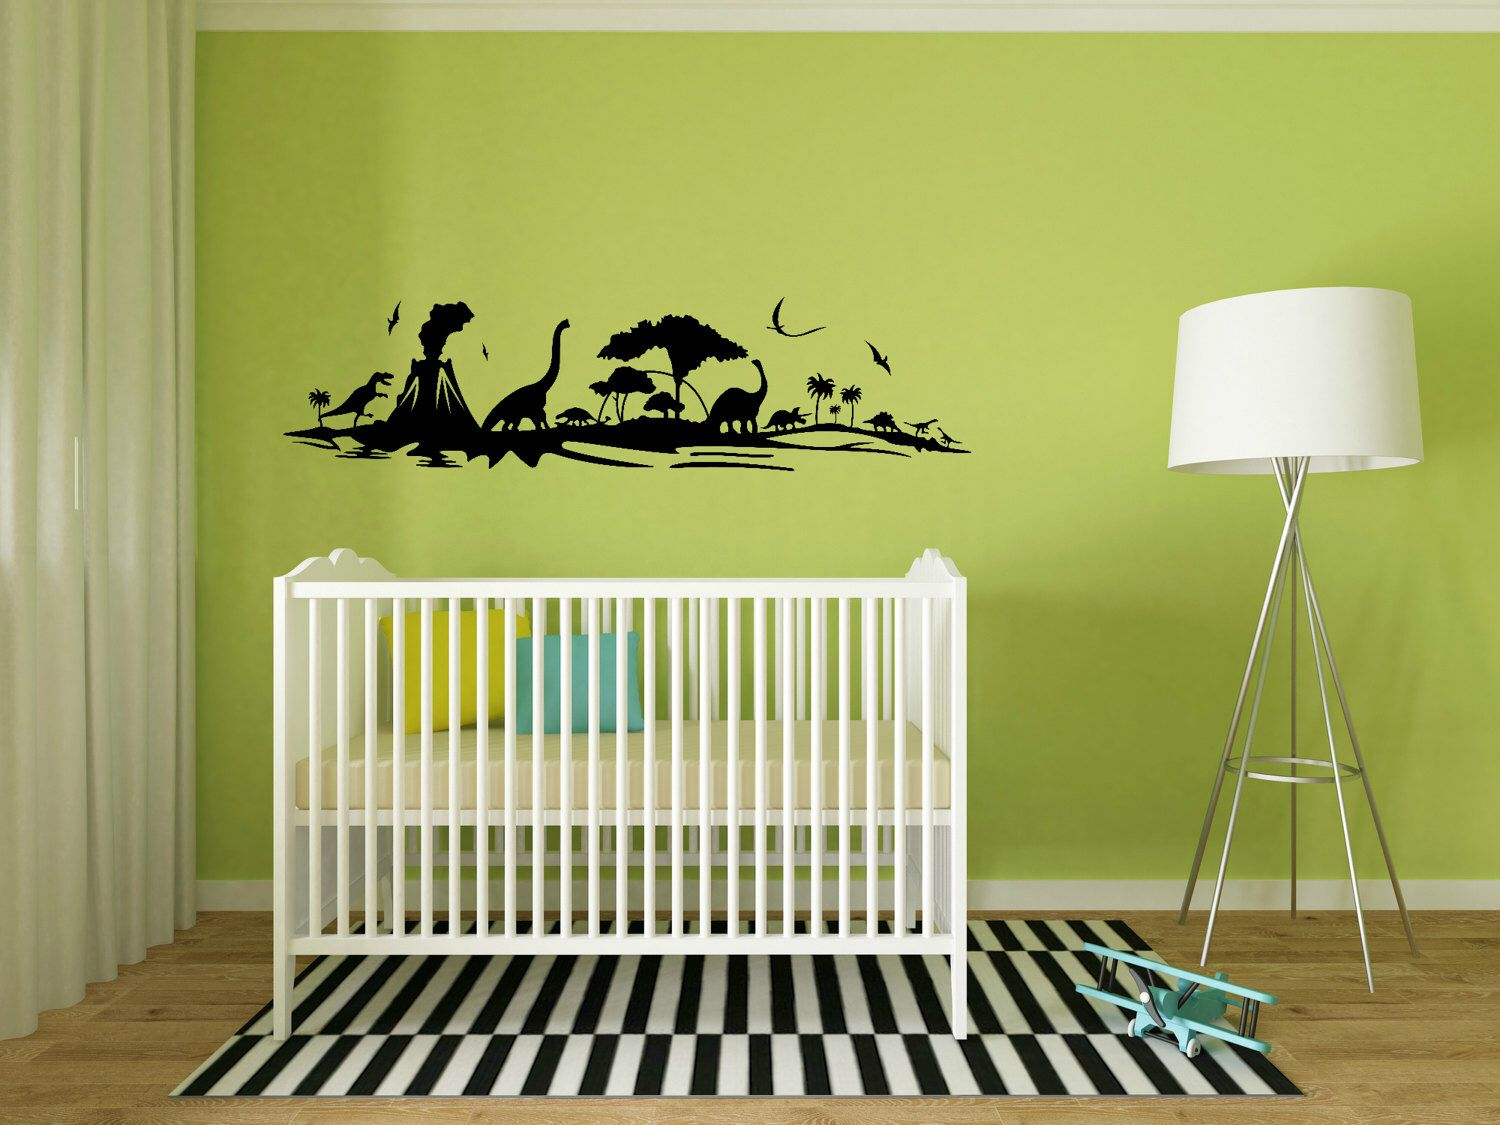 Dinosaur Wall Decal - Dinosaur Landscape Wall Decal - Dinosaur ...